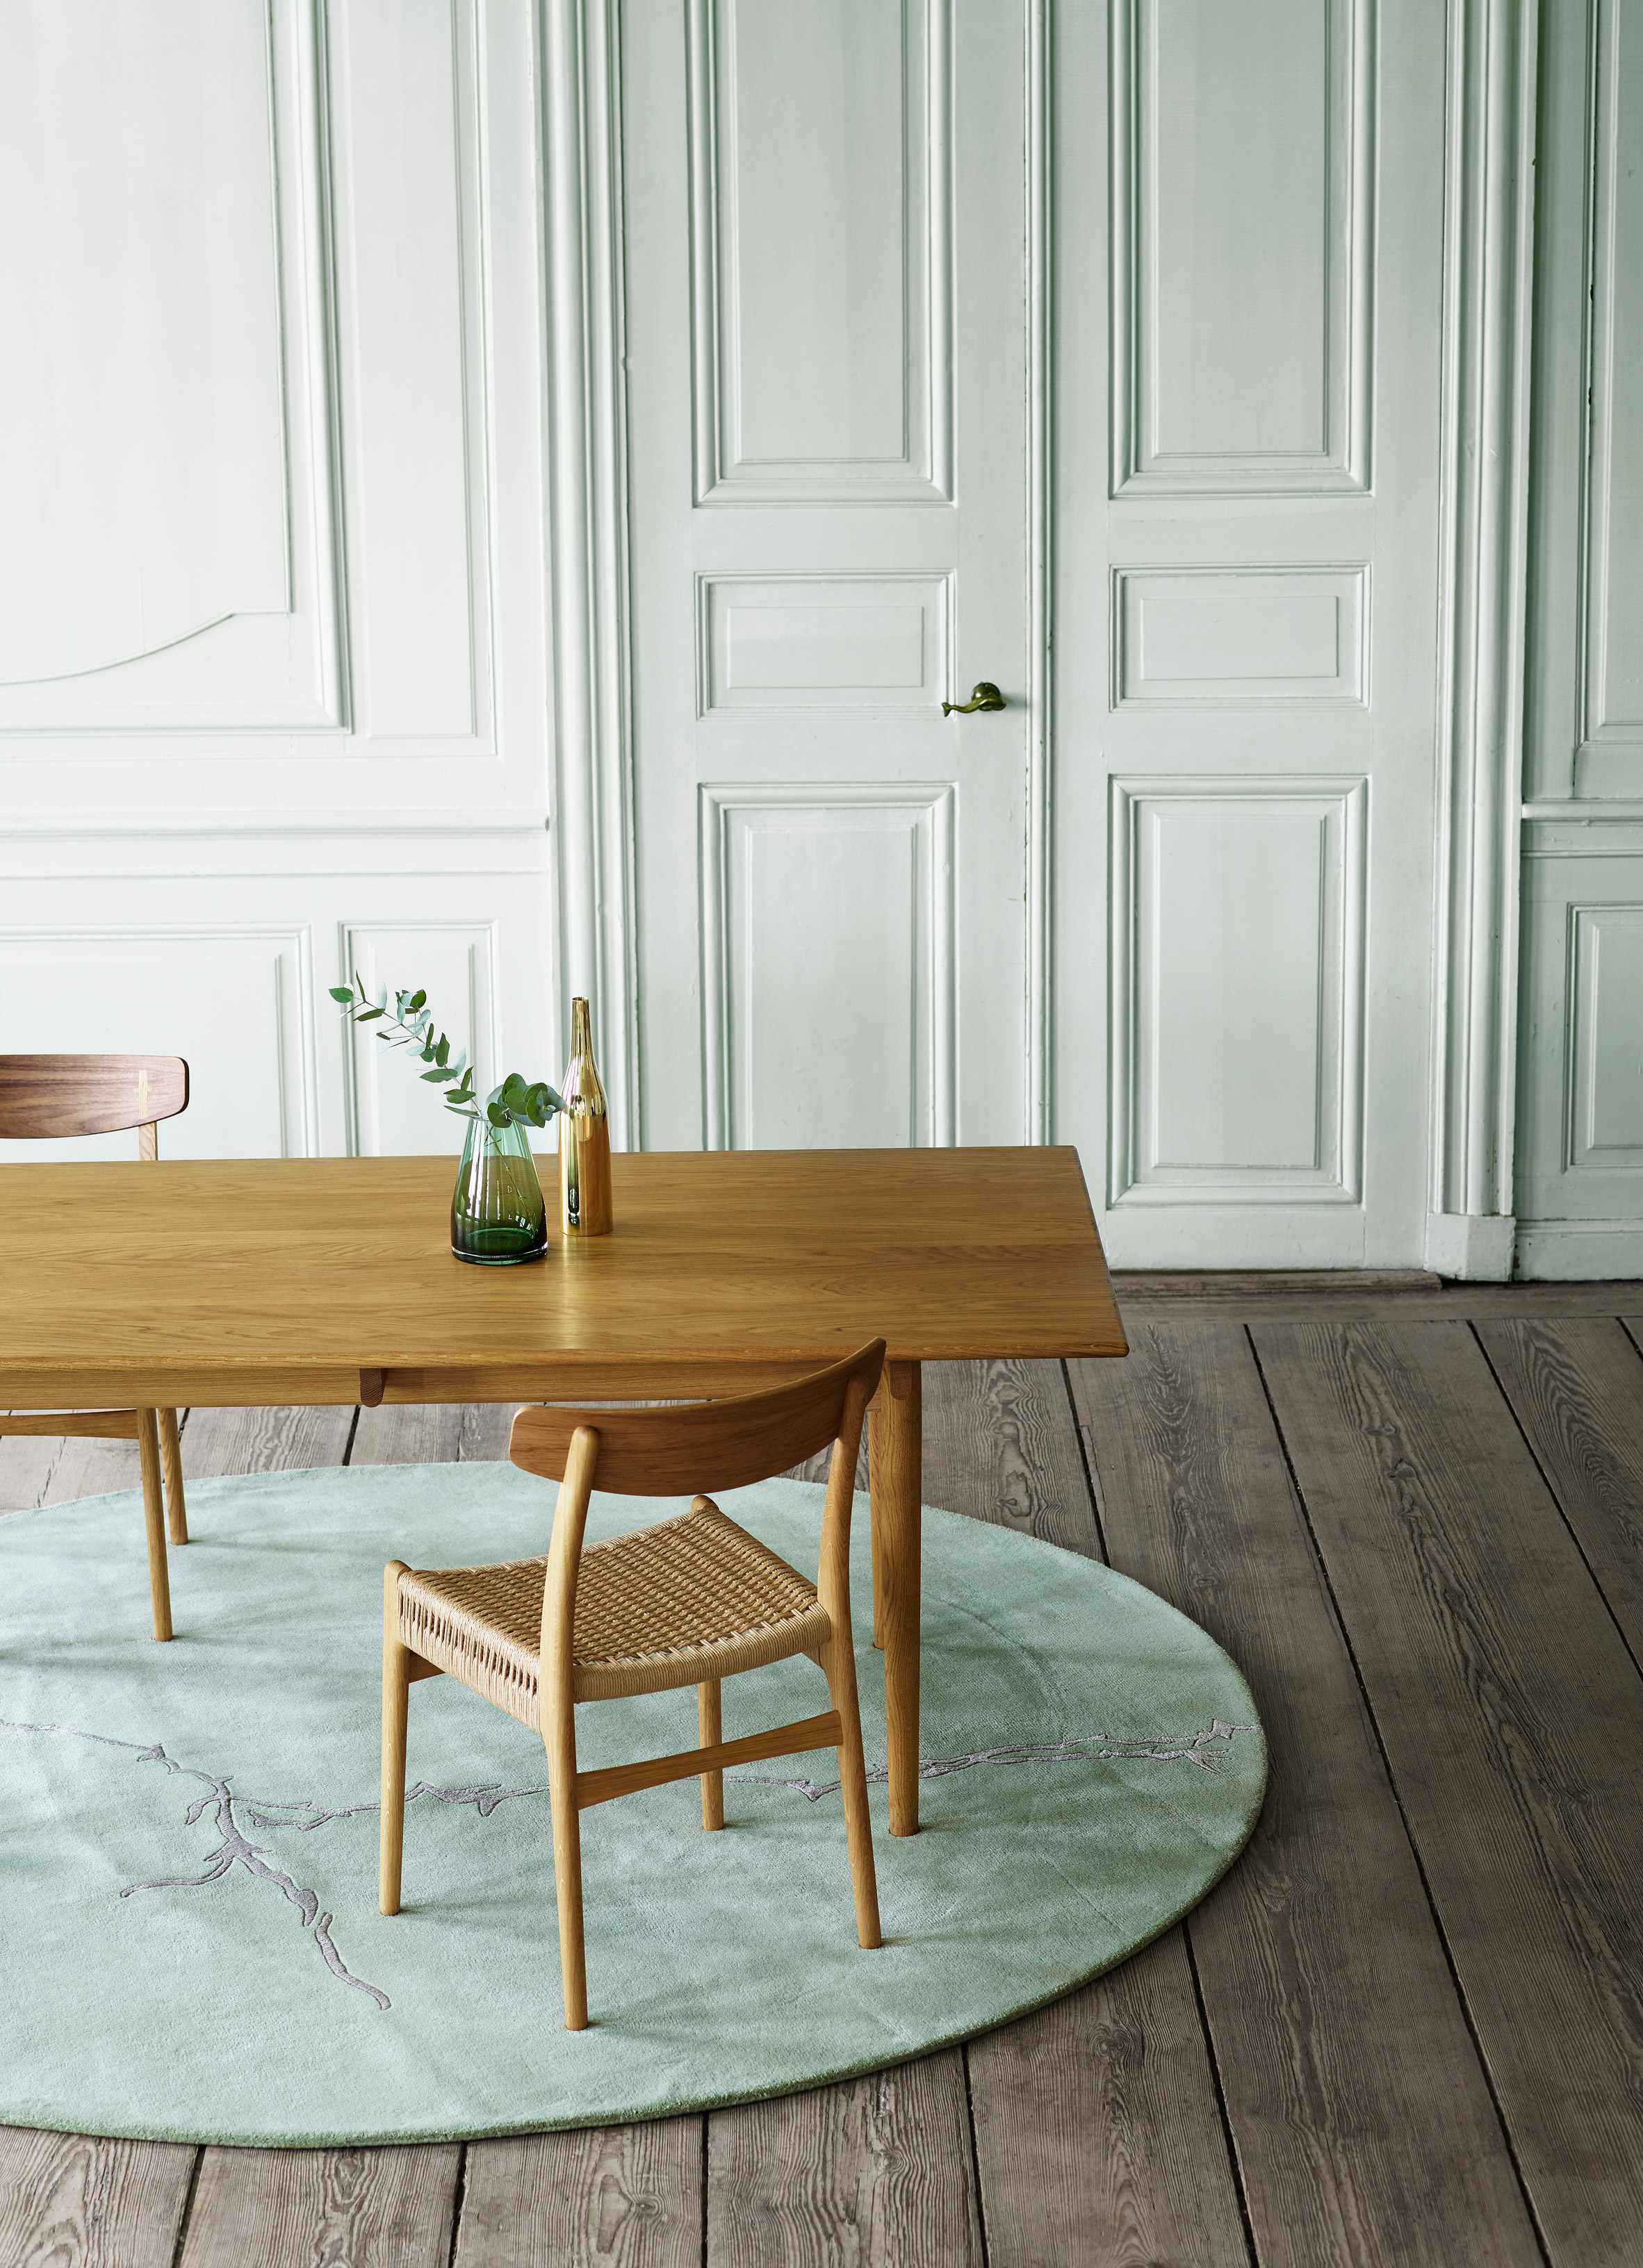 Carl Hansen & Son Re-Releases Final Chair from Hans J Wegner Collection hans j wegner collection Carl Hansen & Son Releases Final Chair from Hans J Wegner Collection Carl Hansen Son Re Releases Final Chair from Hans J Wegner Collection 6